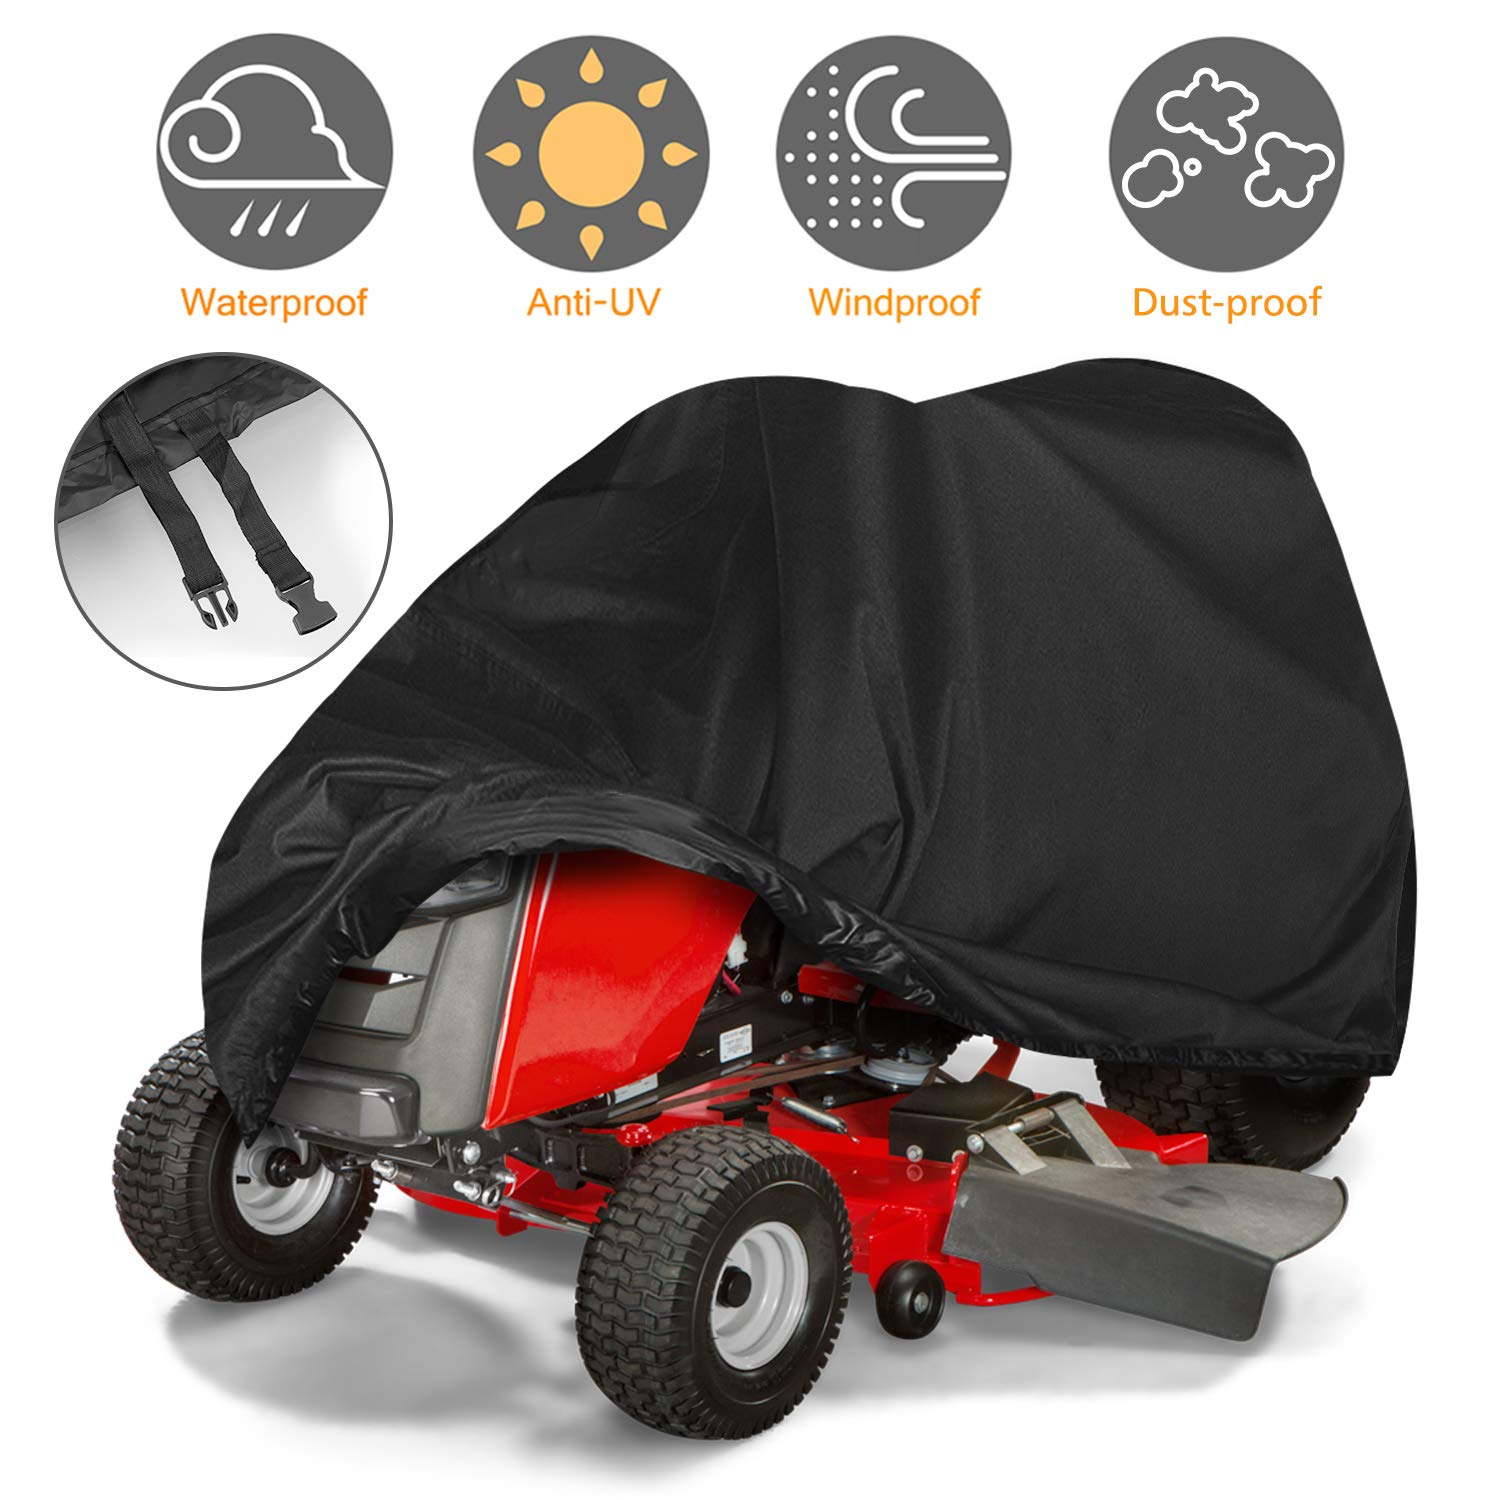 Tvird Lawn Mower Cover, Riding Lawn Mower Cover Made with Durable Fabric Heavy-Duty | Features Double Stitched Seams & Interior Waterproof&UV Protection Coating | for Up to 54'' Decks by Tvird